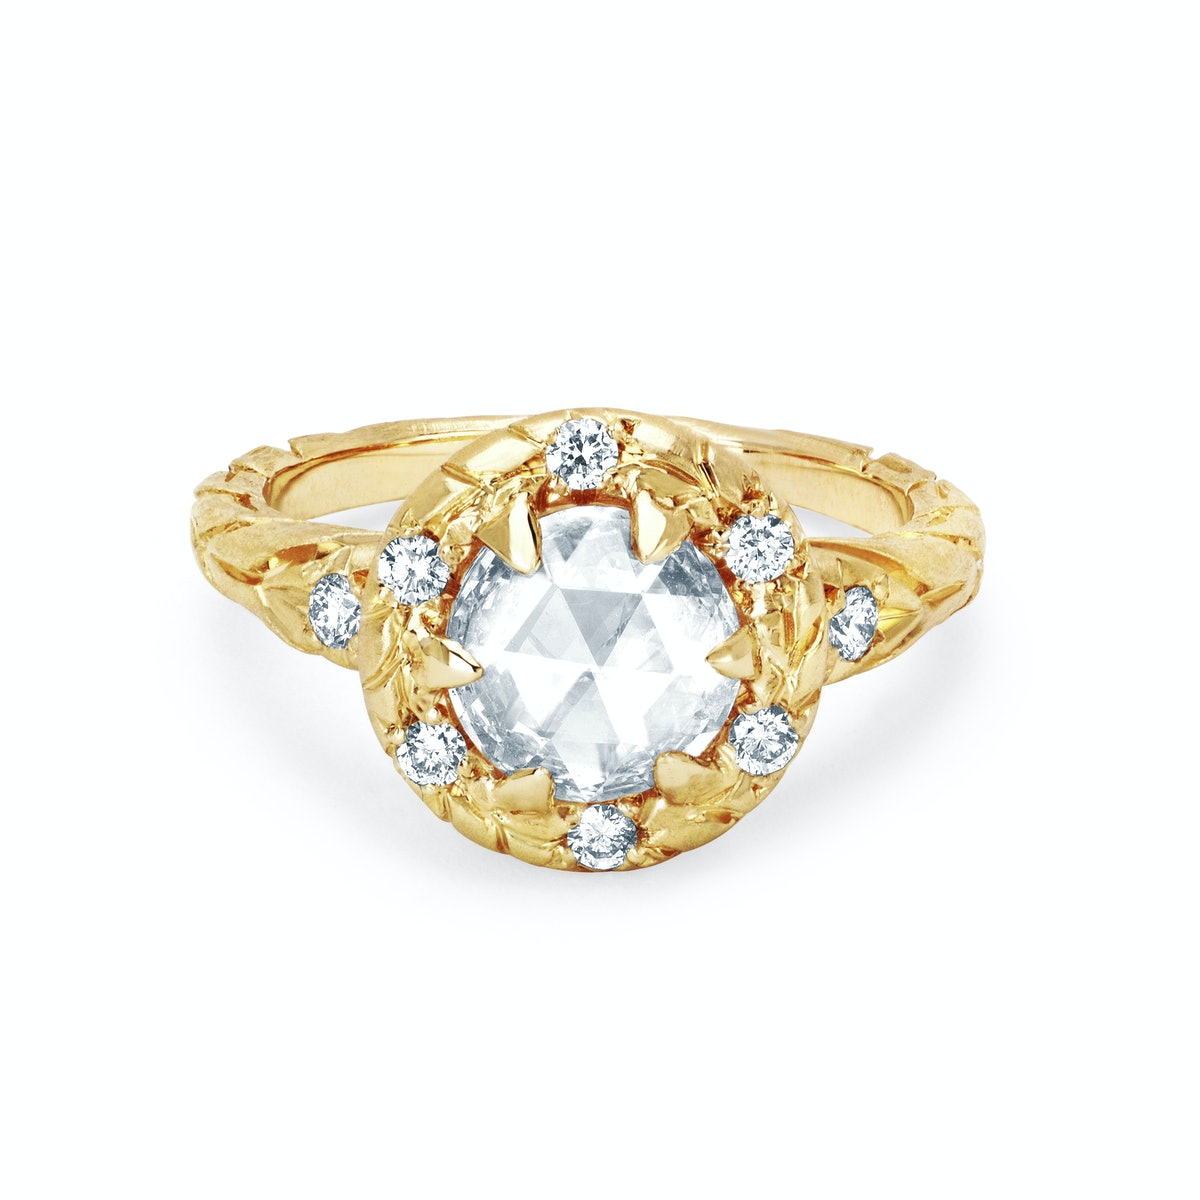 Wilderness Rose Cut Champagne Diamond Ring with Sprinkled Halo from Logan Hollowell.